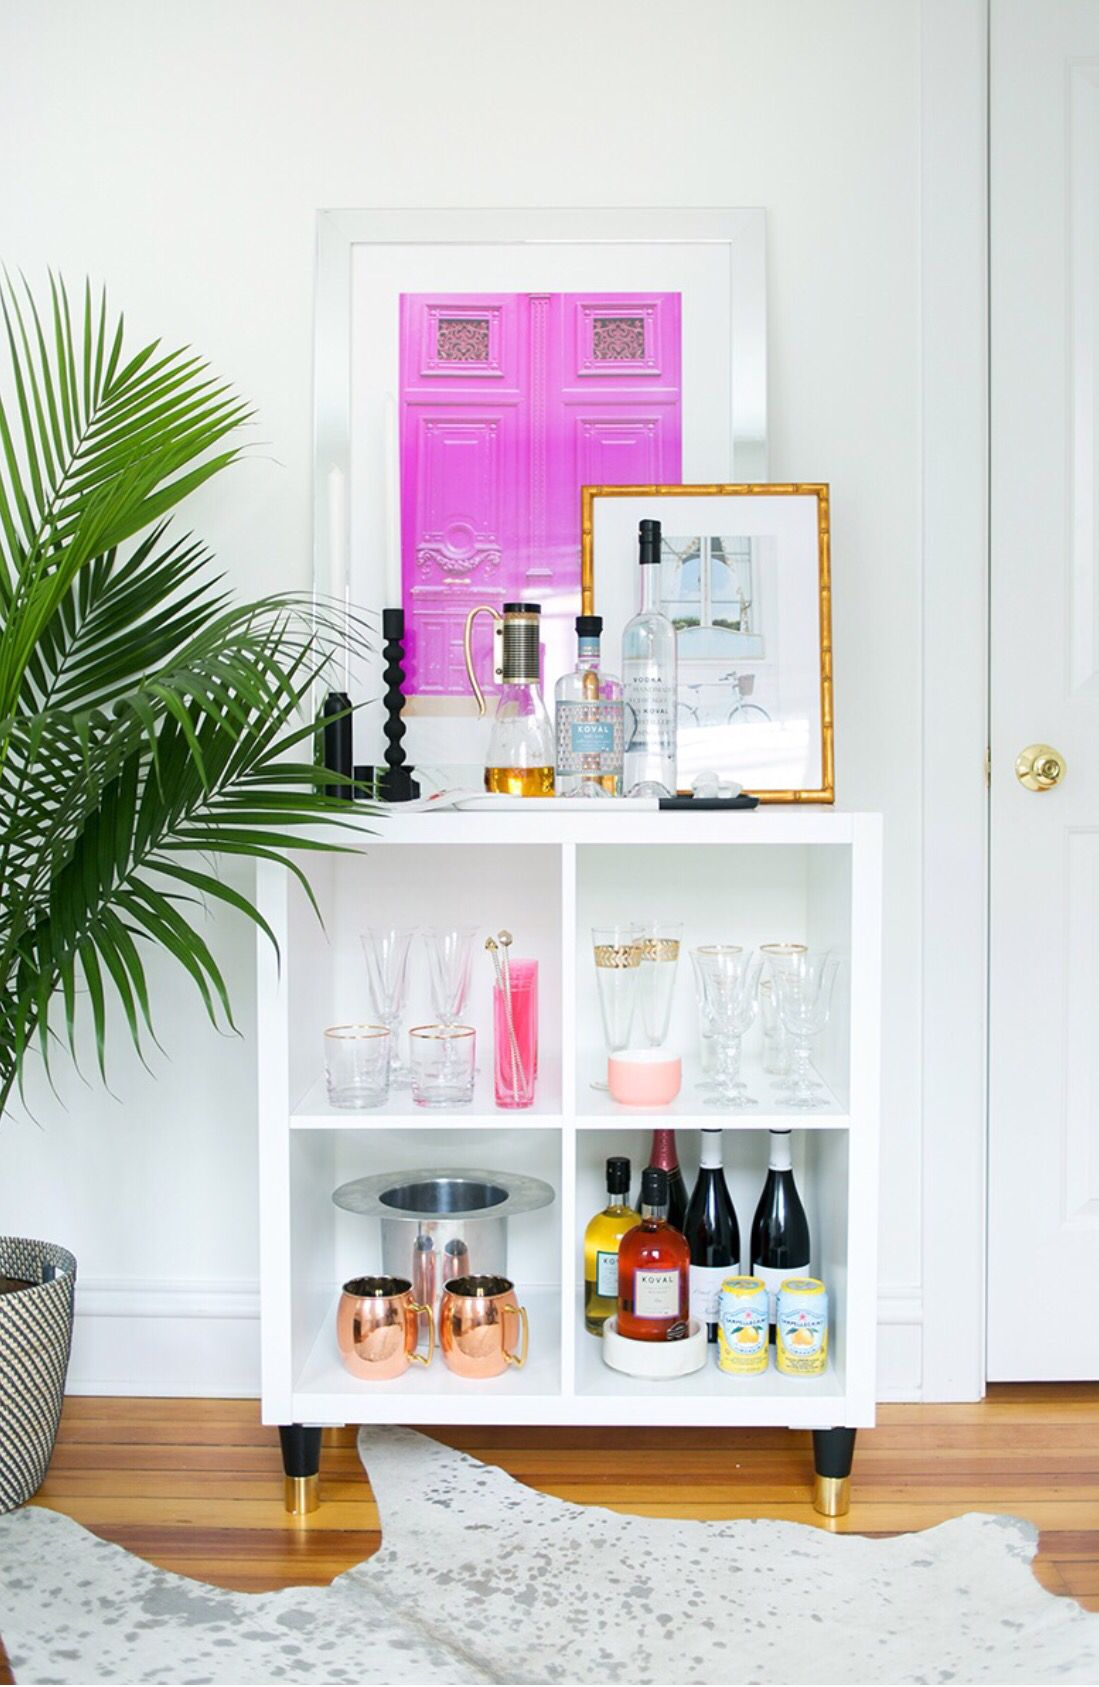 Pin By Hitomi On H Pinterest Cupboard Bar Carts And Bar